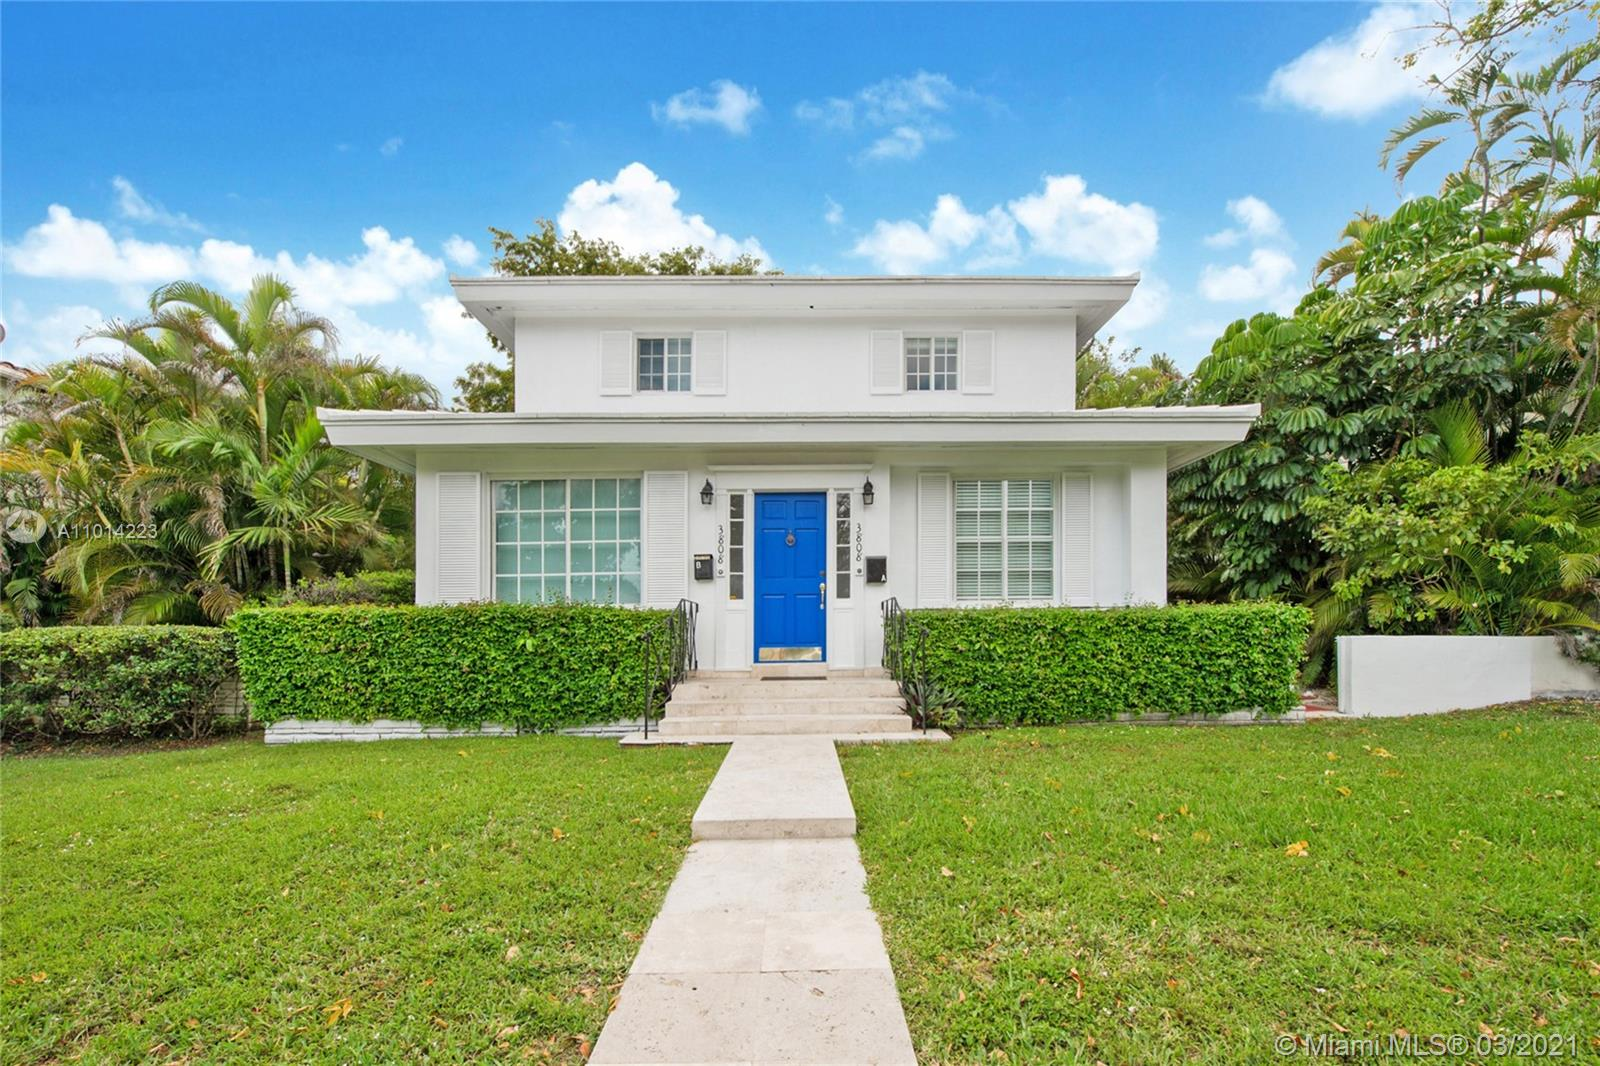 Remodeled, move in condition duplex in one of Miami's most sought after neighborhoods - Coral Gables! This side by side (3/2 x 2), two story townhouse style duplex features a full bedroom/bathroom on the first floor, living/dining area leading to kitchen, extra large bedrooms and tons of closet space. Brand new, beautiful kitchen and bathrooms in both units will make this a hassle free rental or a great option to live in one and keep the other side rented. Each unit feels like its own home with two private parking spots per unit in the back and a private side yard entry/exit. 2020 renovation was permitted with the city of Coral Gables. Visit today!